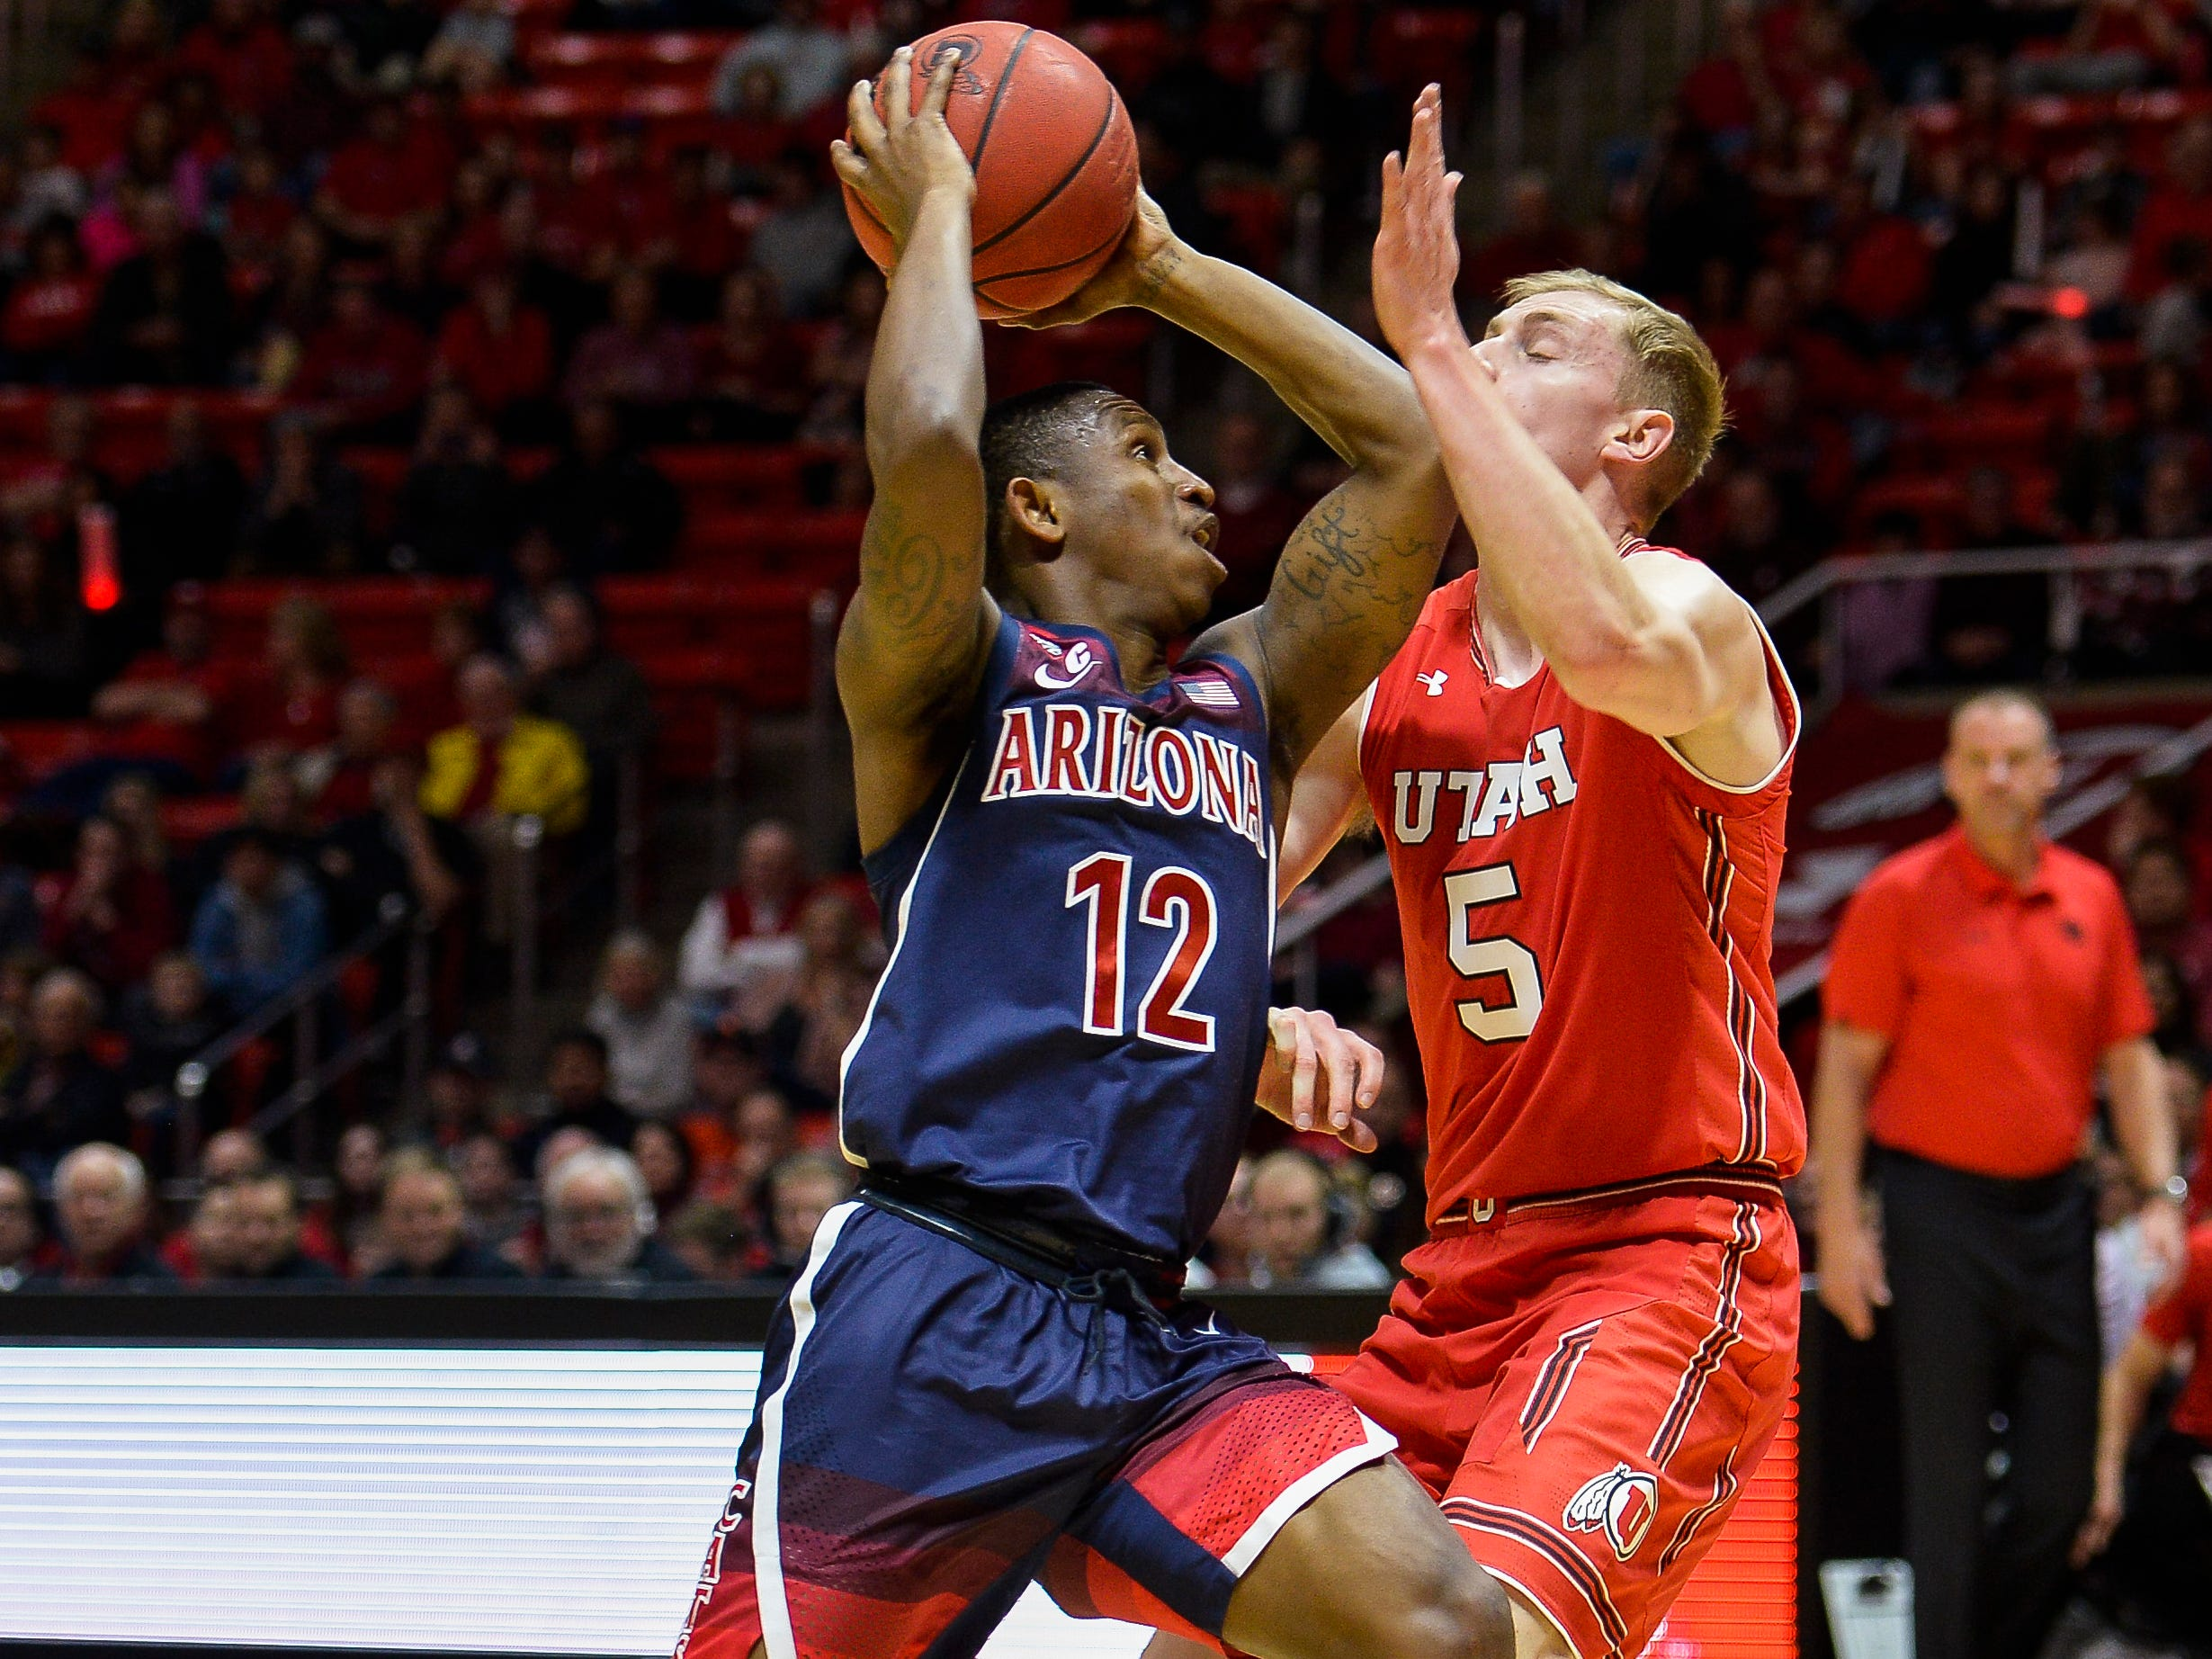 Arizona guard Justin Coleman (12) attempts to drive past Utah guard Parker Van Dyke (5) during the first half of an NCAA college basketball game Thursday, Feb. 14, 2019, in Salt Lake City.